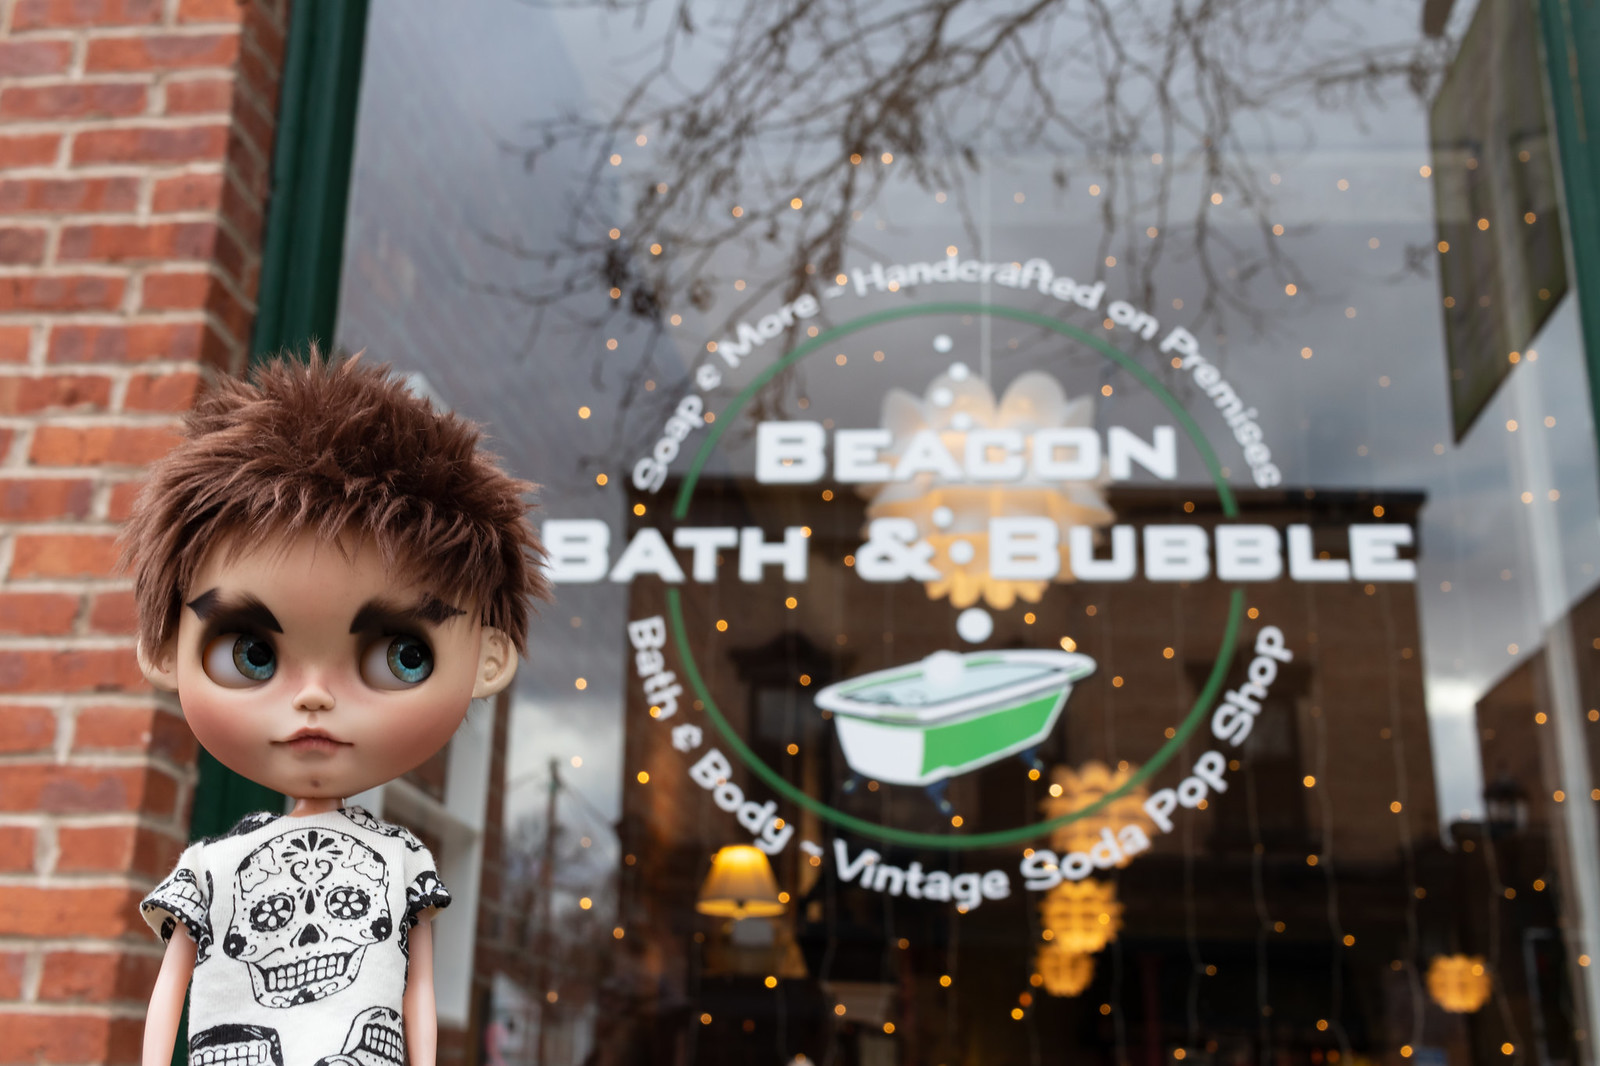 Beacon Bath & Bubble